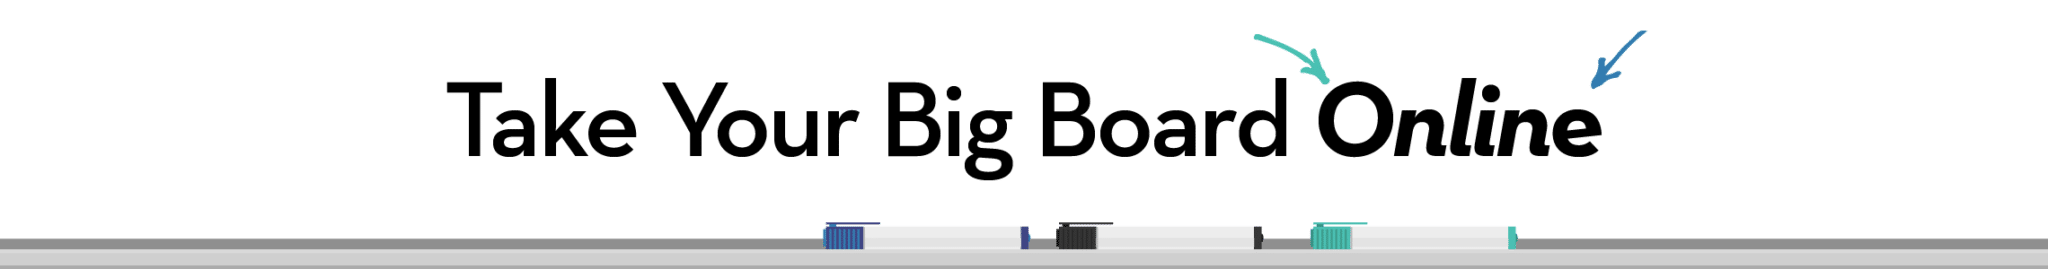 5-take-your-big-board-online